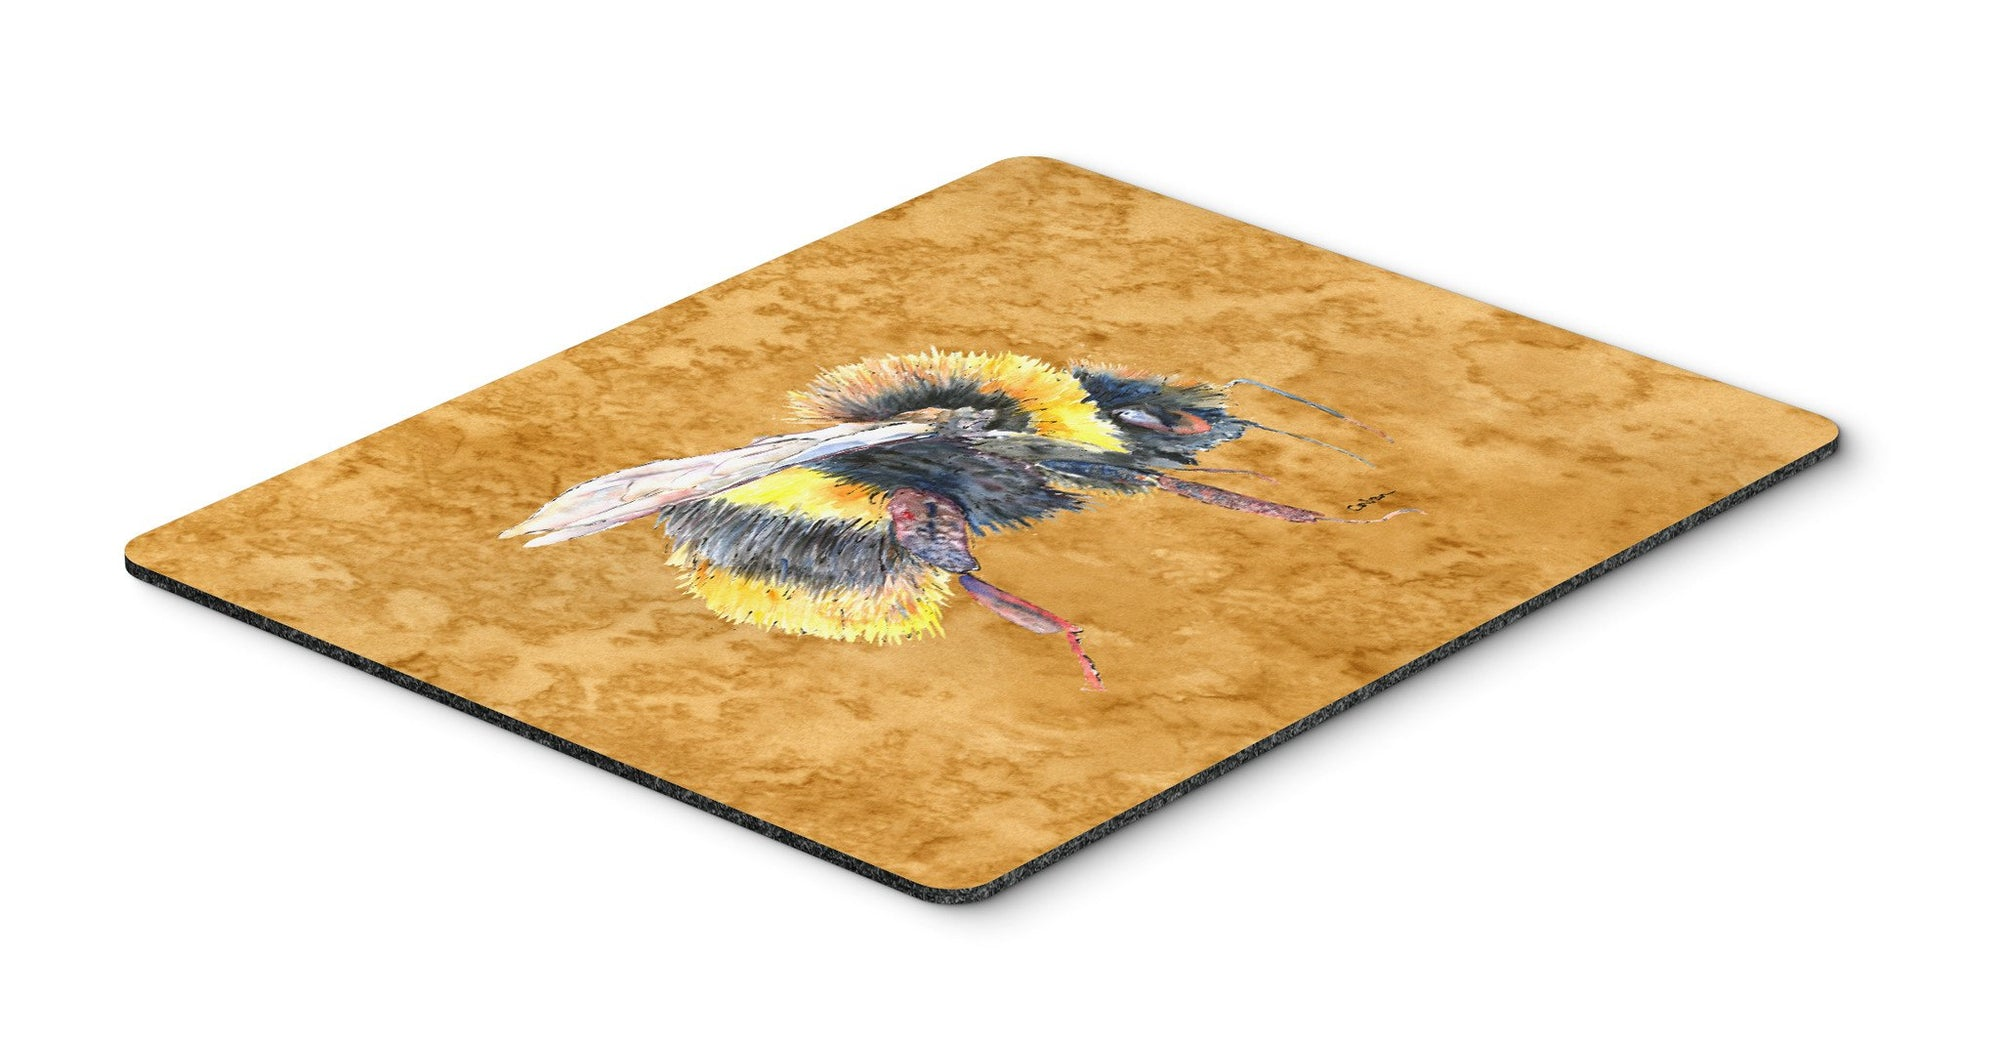 Bee on Gold Mouse Pad, Hot Pad or Trivet by Caroline's Treasures